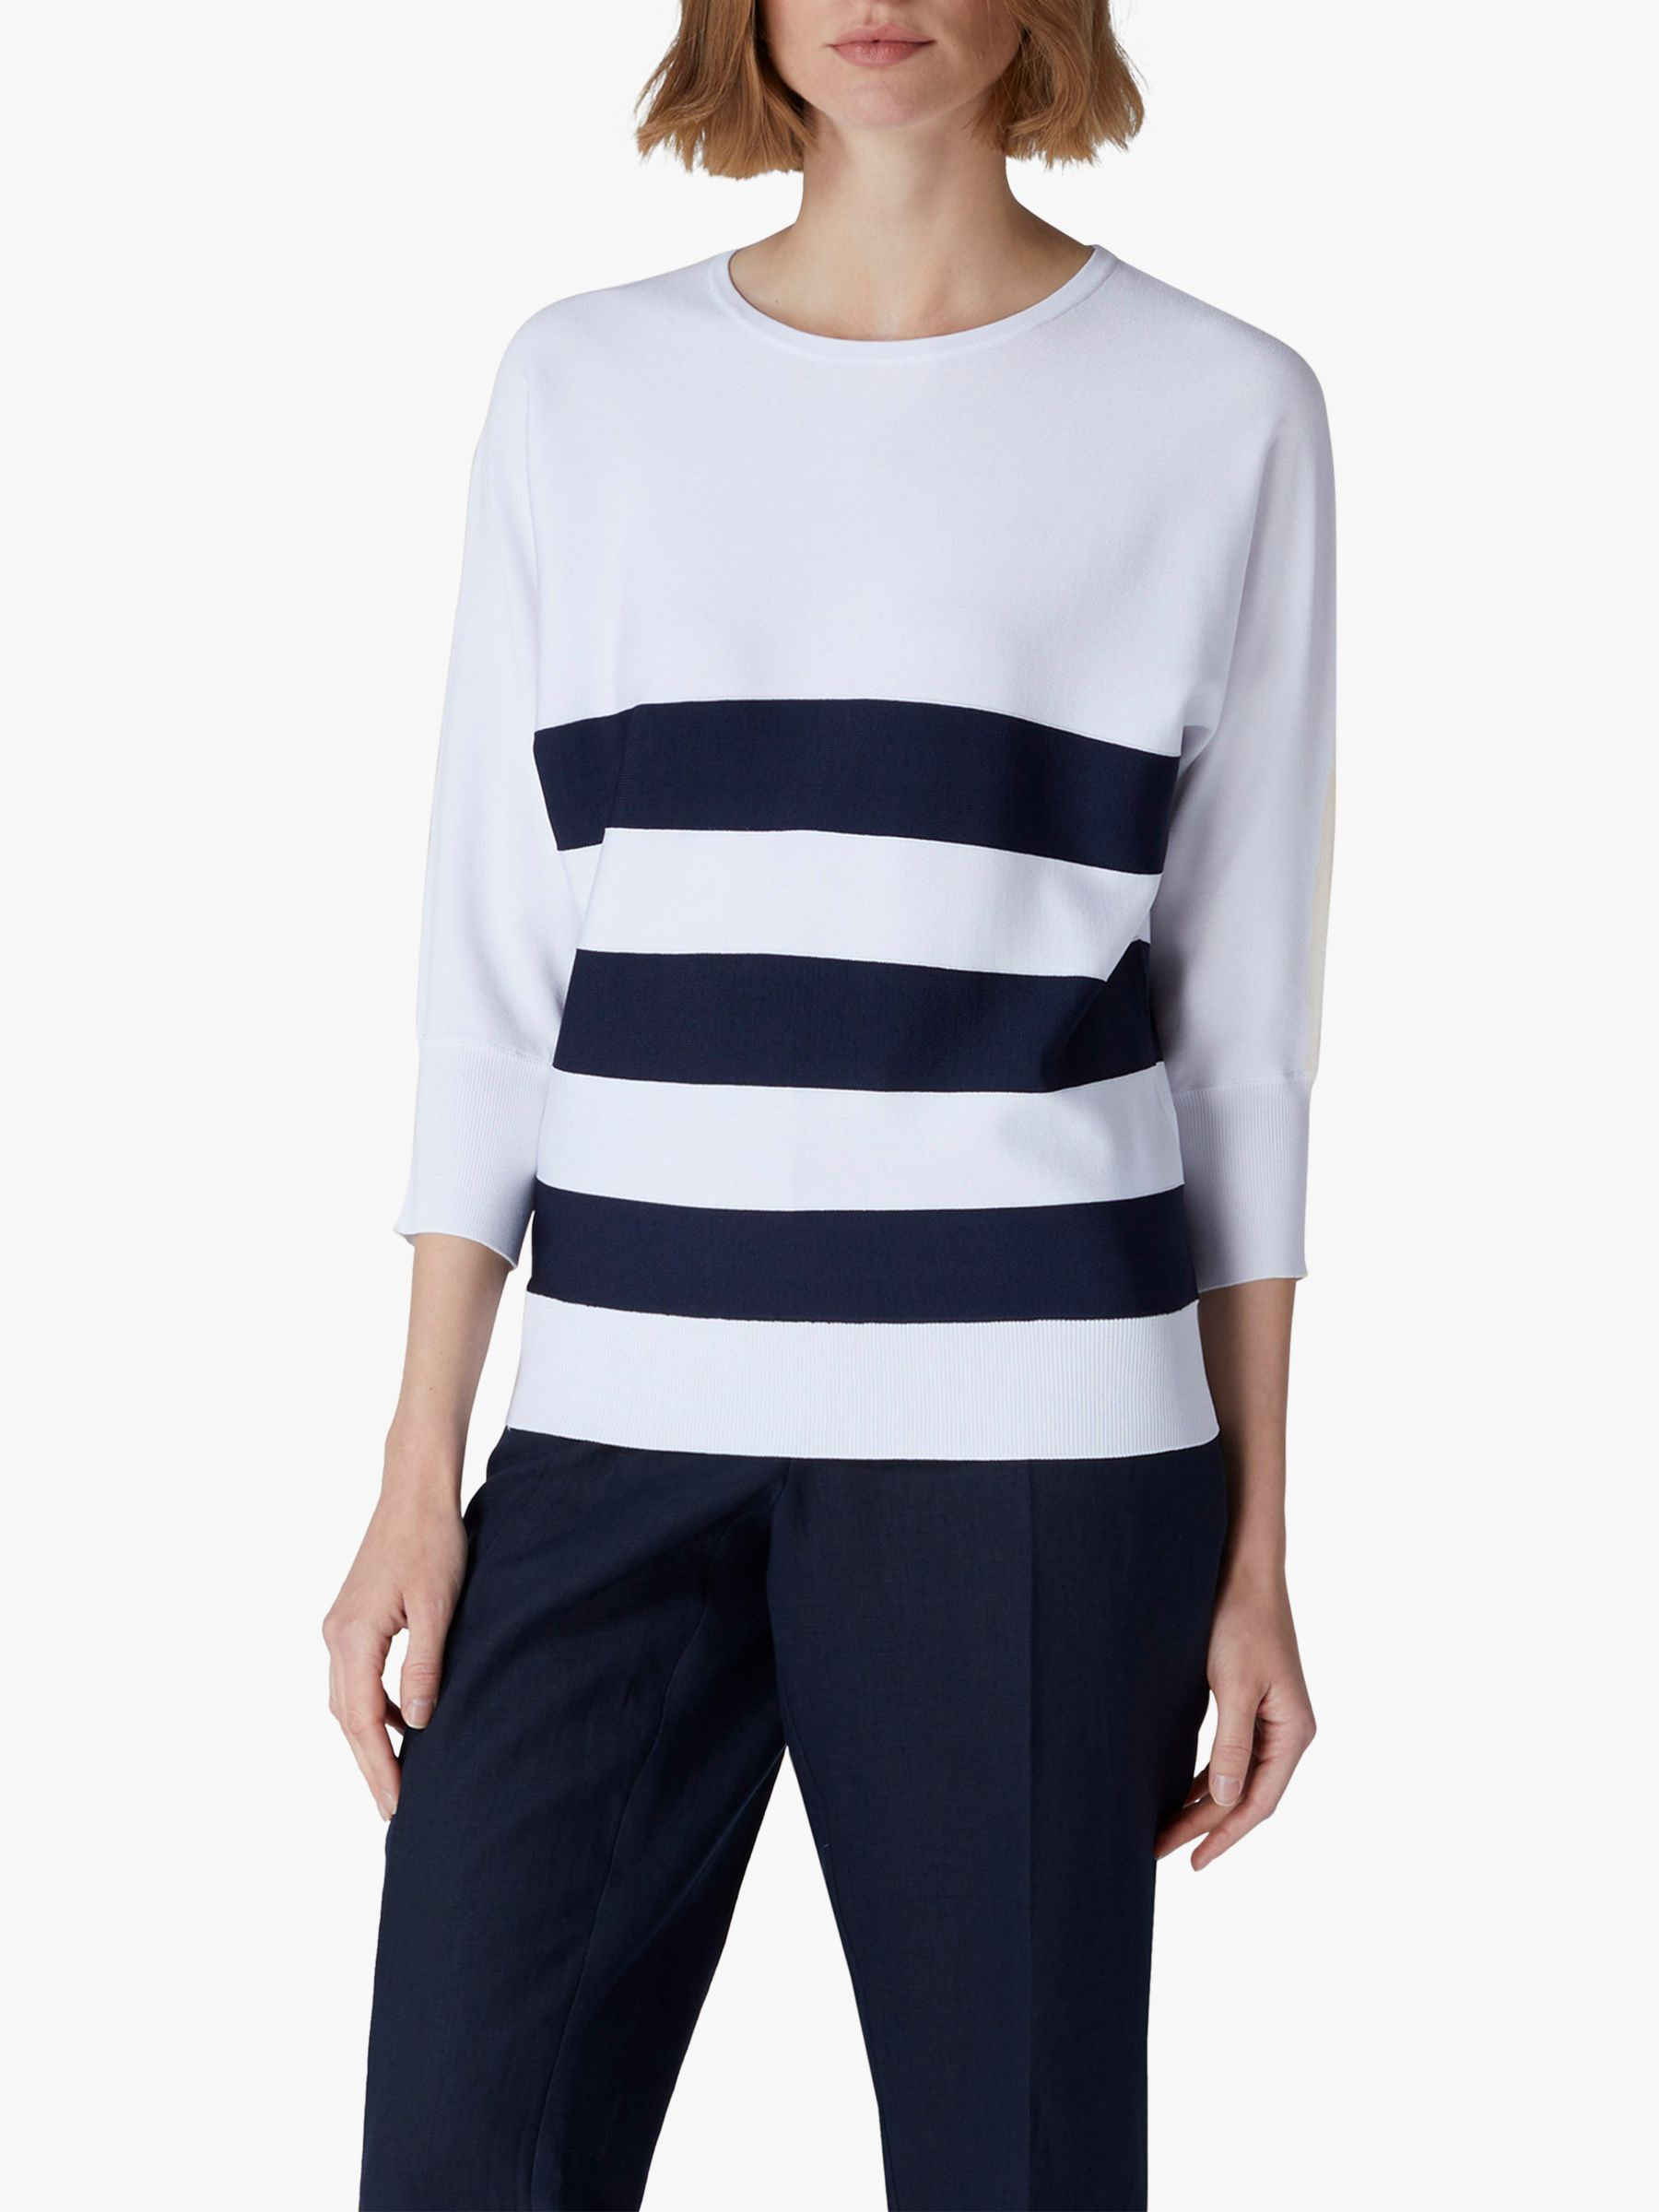 Jaeger Jaeger Striped Batwing Top, Navy